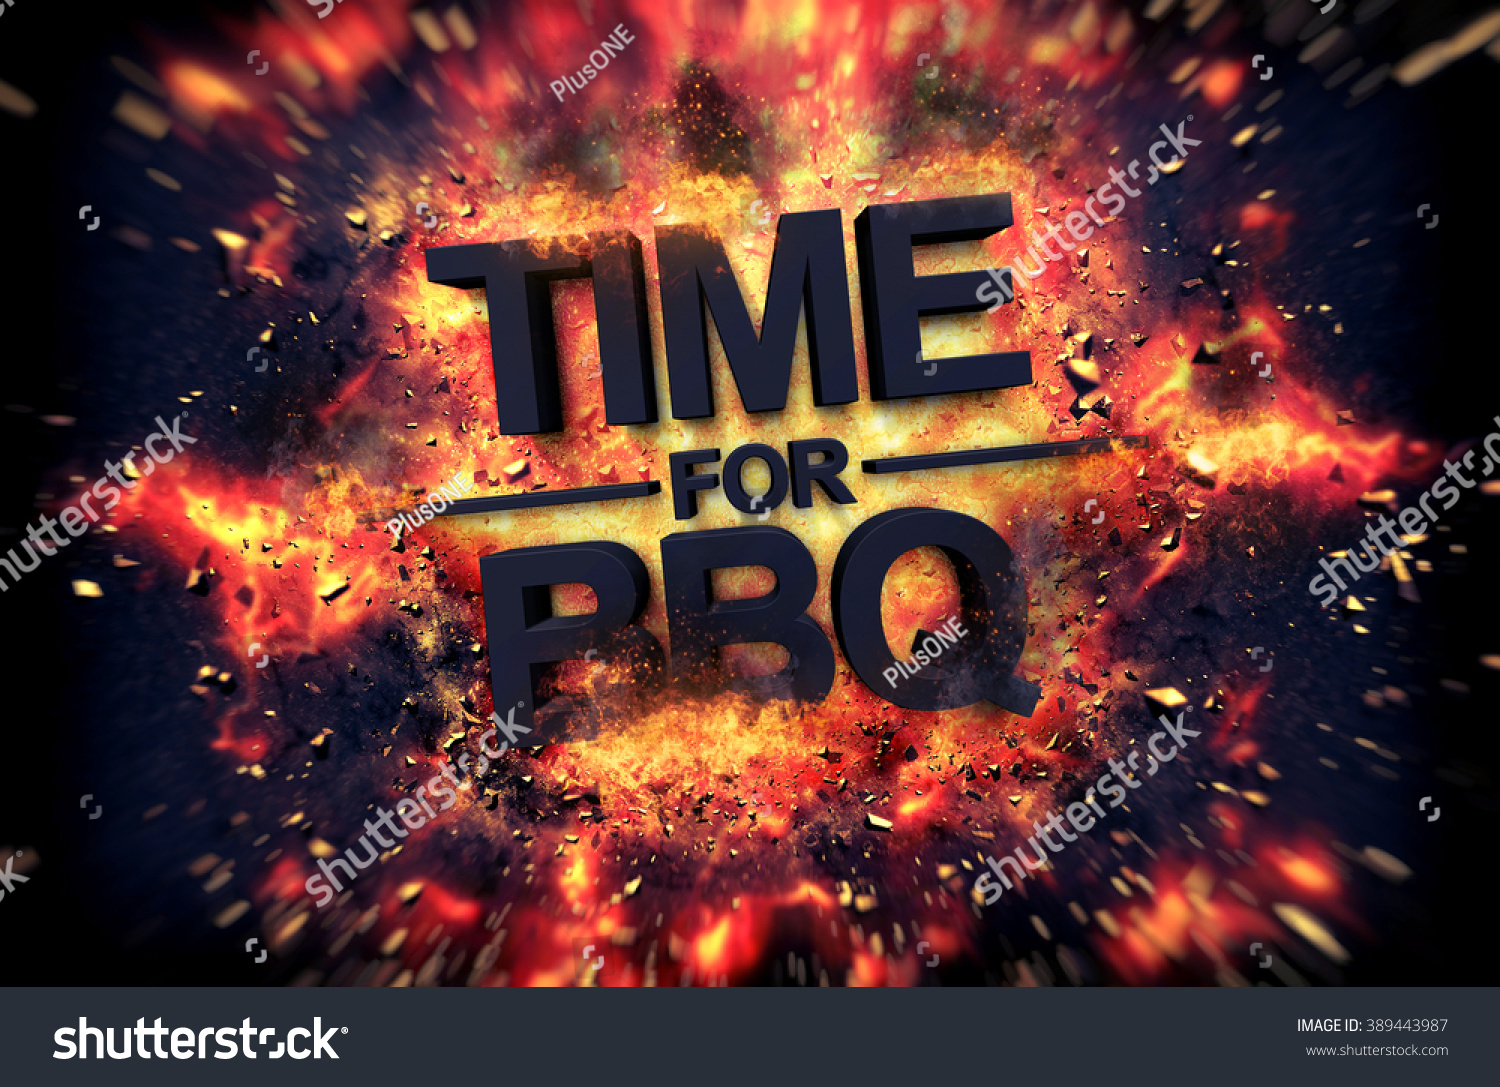 Time Bbq Fiery Poster Design Dramatic Stock Illustration